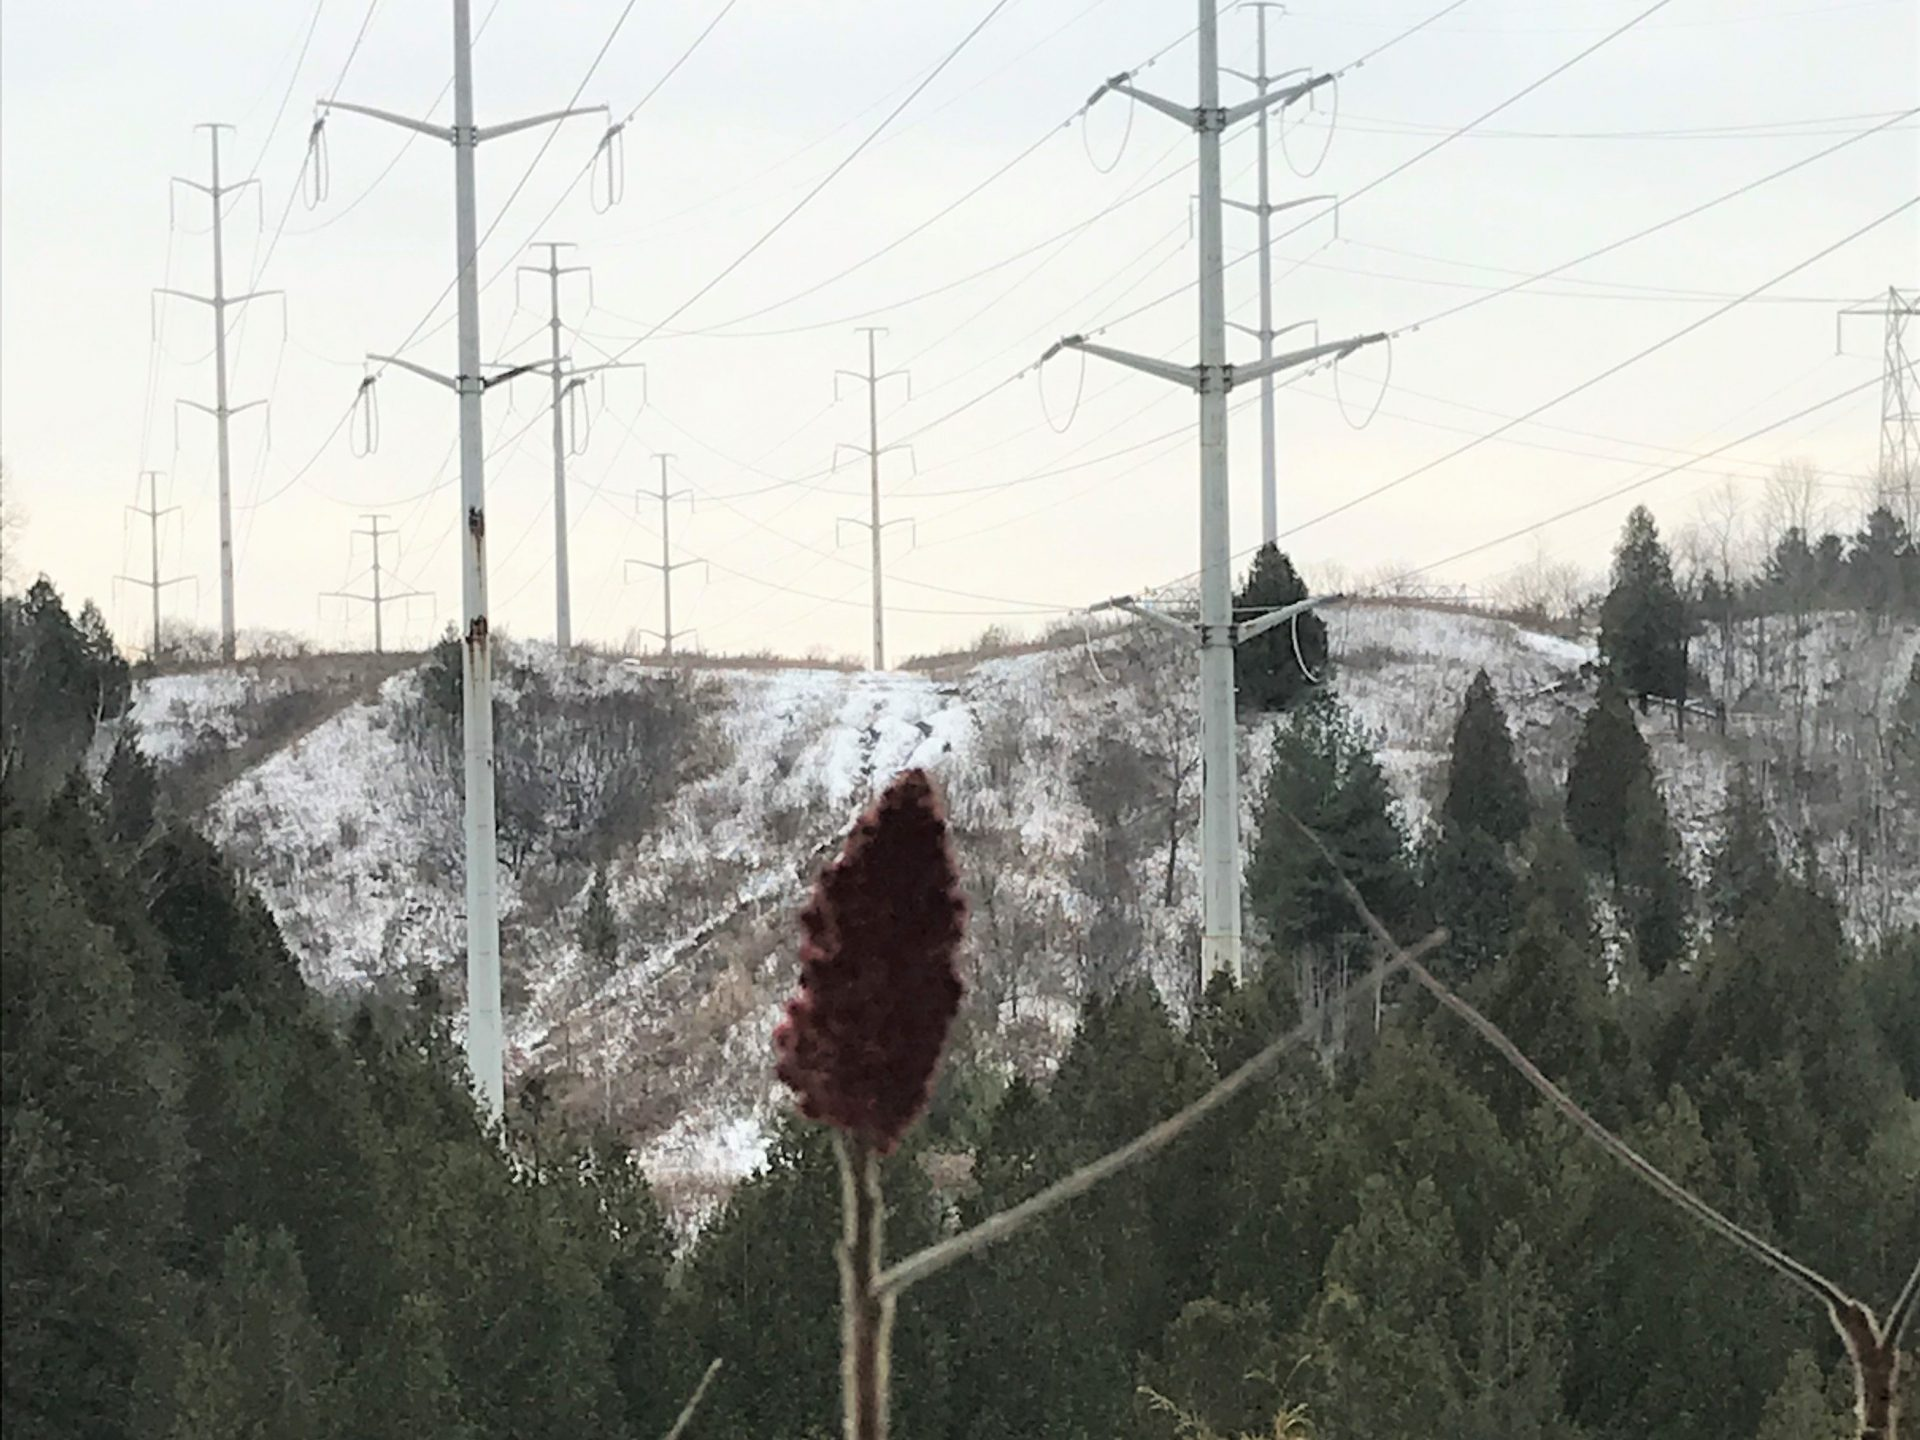 View of a ravine valley and hydro corridor in The Meadowy in winter